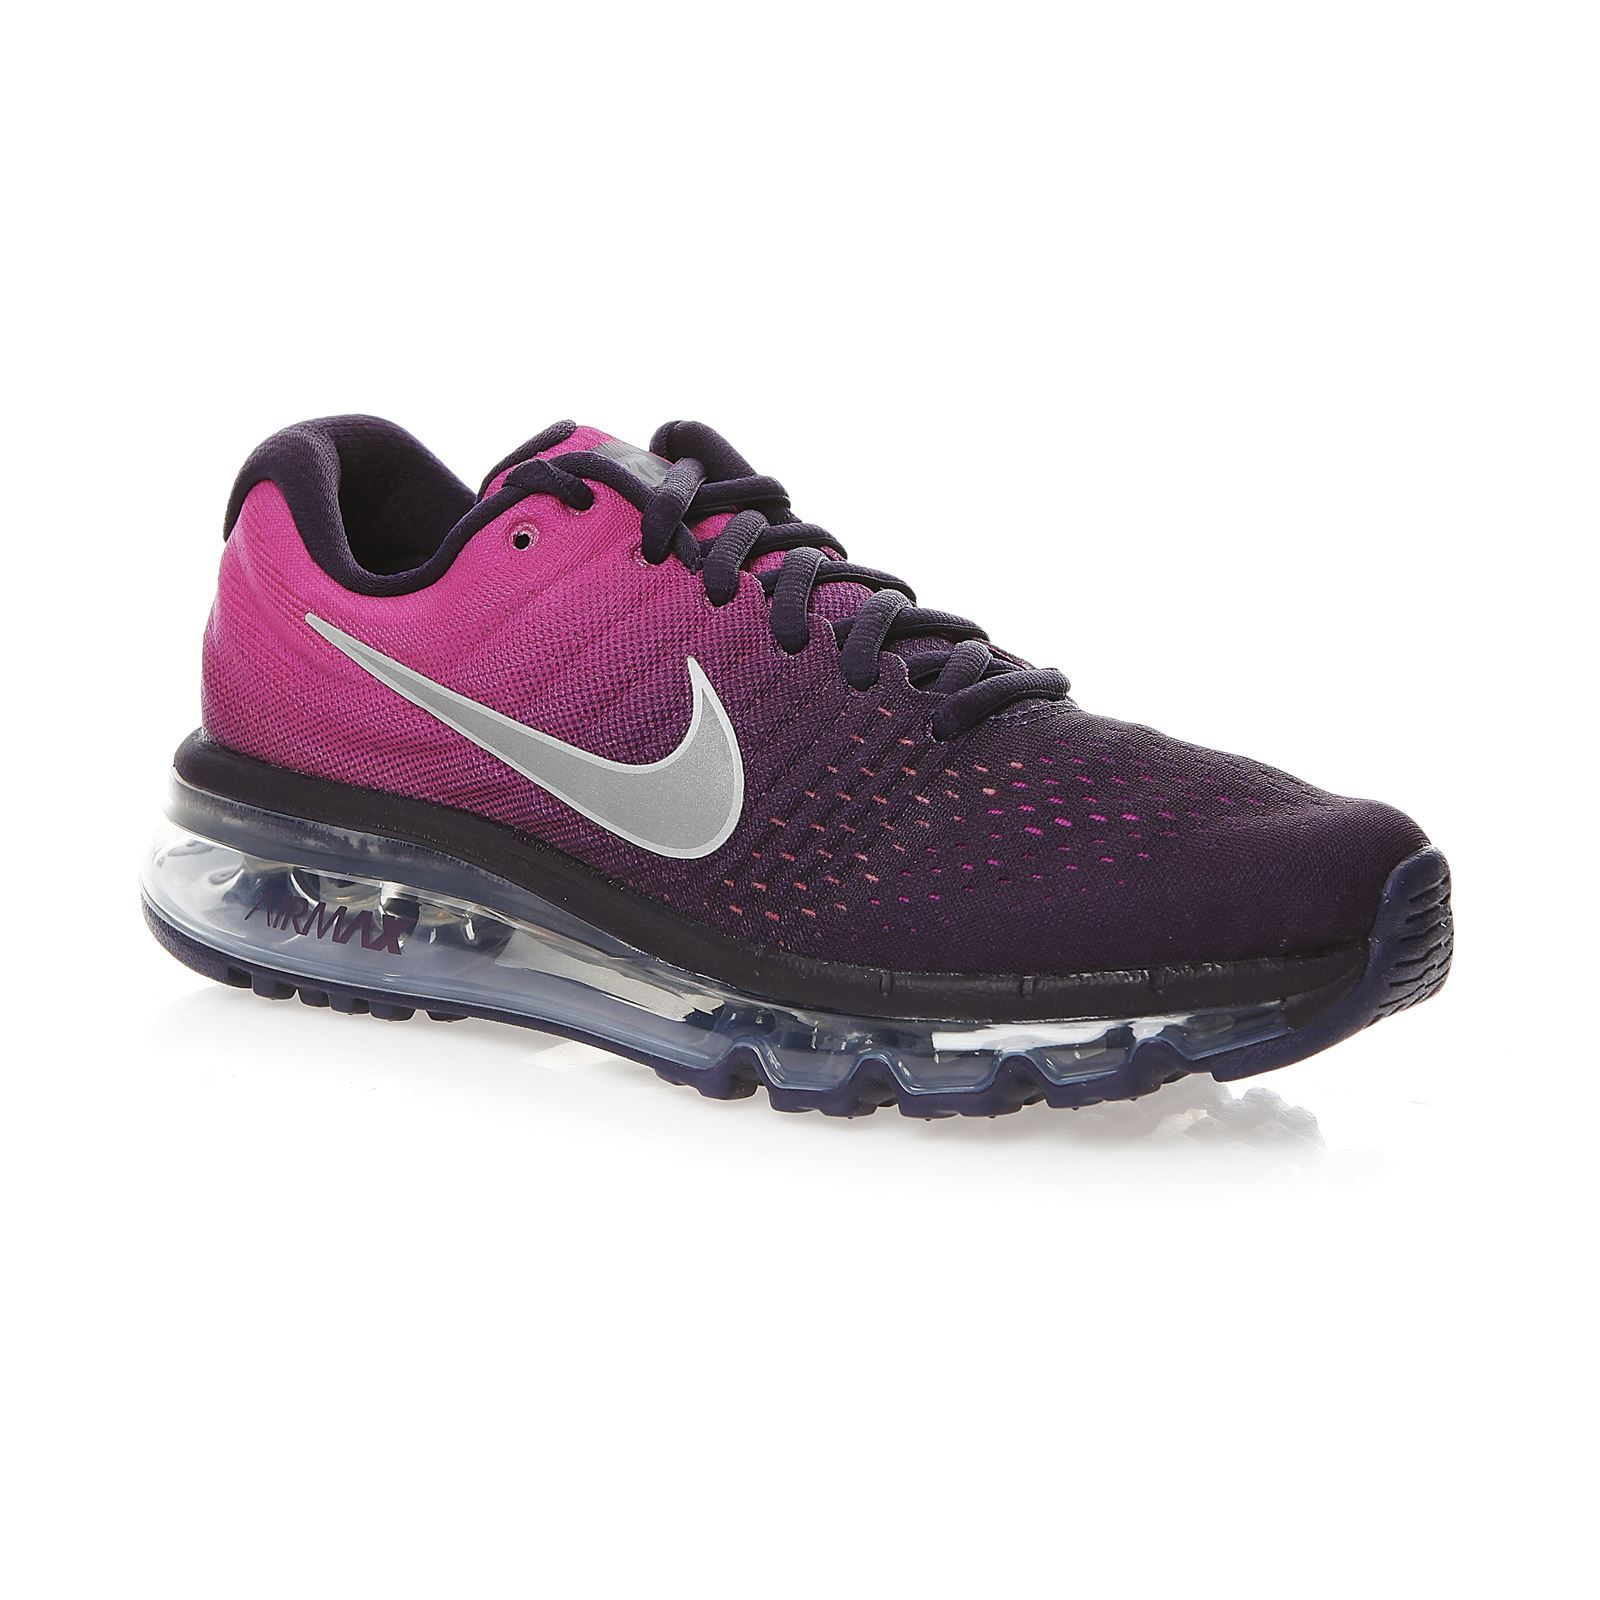 Nike Air Max 2017 - Sneakers - mauve